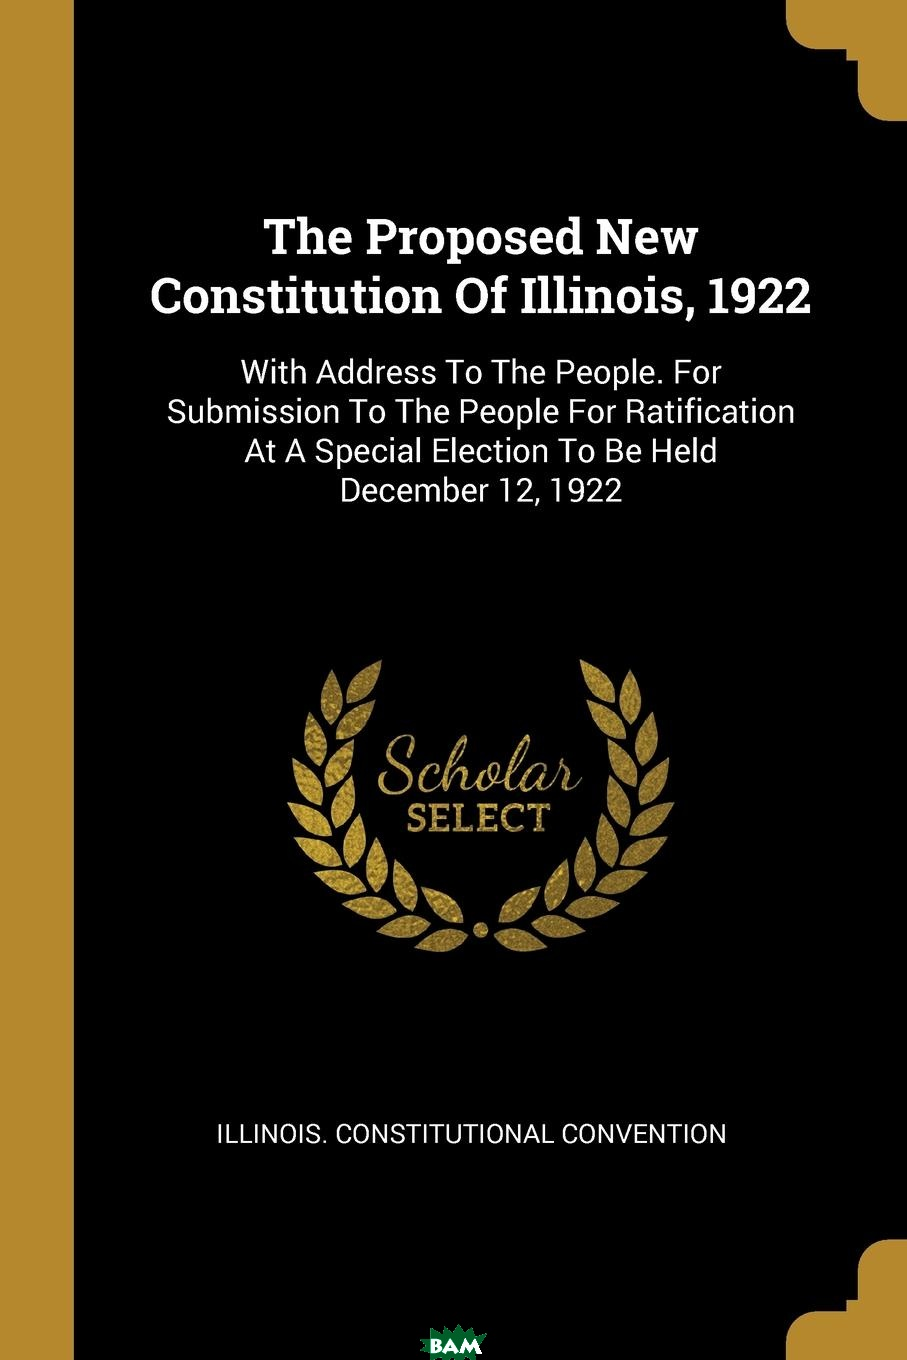 Купить The Proposed New Constitution Of Illinois, 1922. With Address To The People. For Submission To The People For Ratification At A Special Election To Be Held December 12, 1922, Illinois. Constitutional Convention, 9781011098637